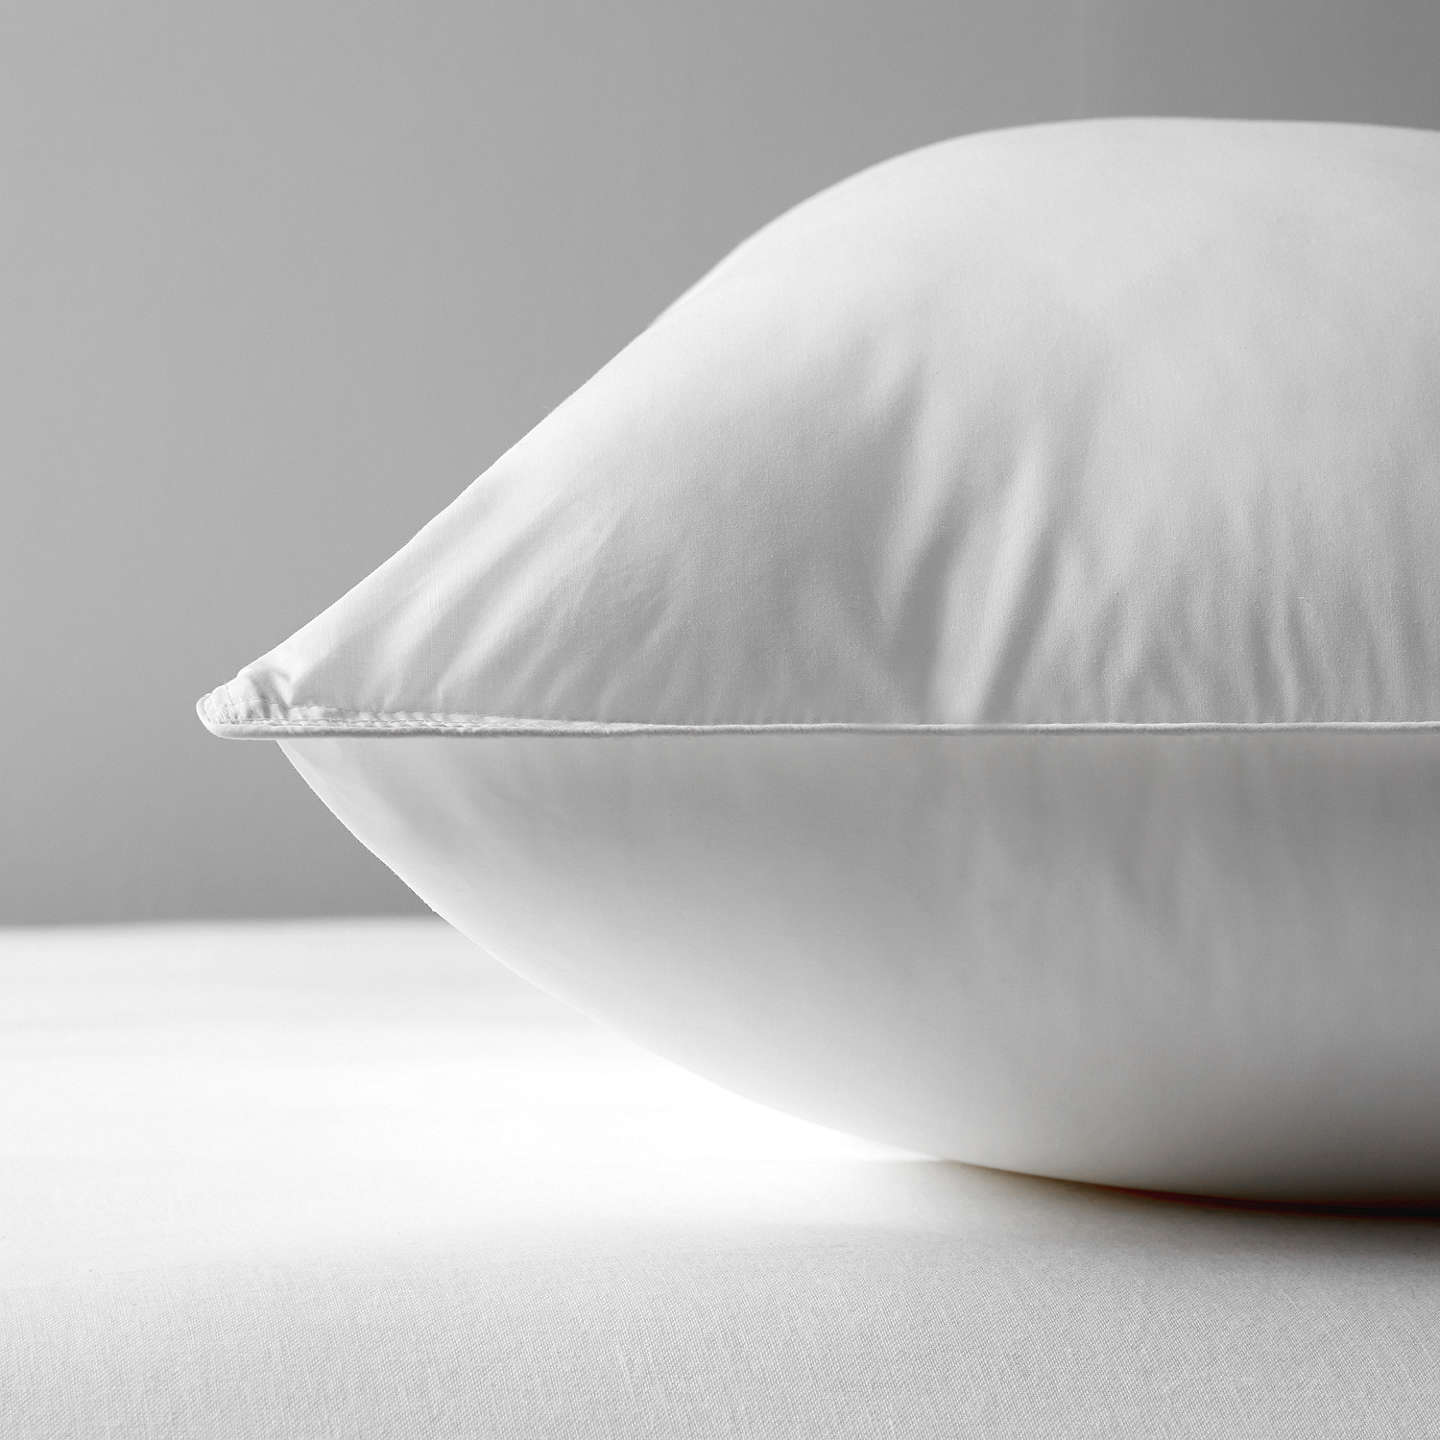 BuyJohn Lewis Synthetic Soft Like Down Kingsize Pillow, Medium/Firm Online at johnlewis.com